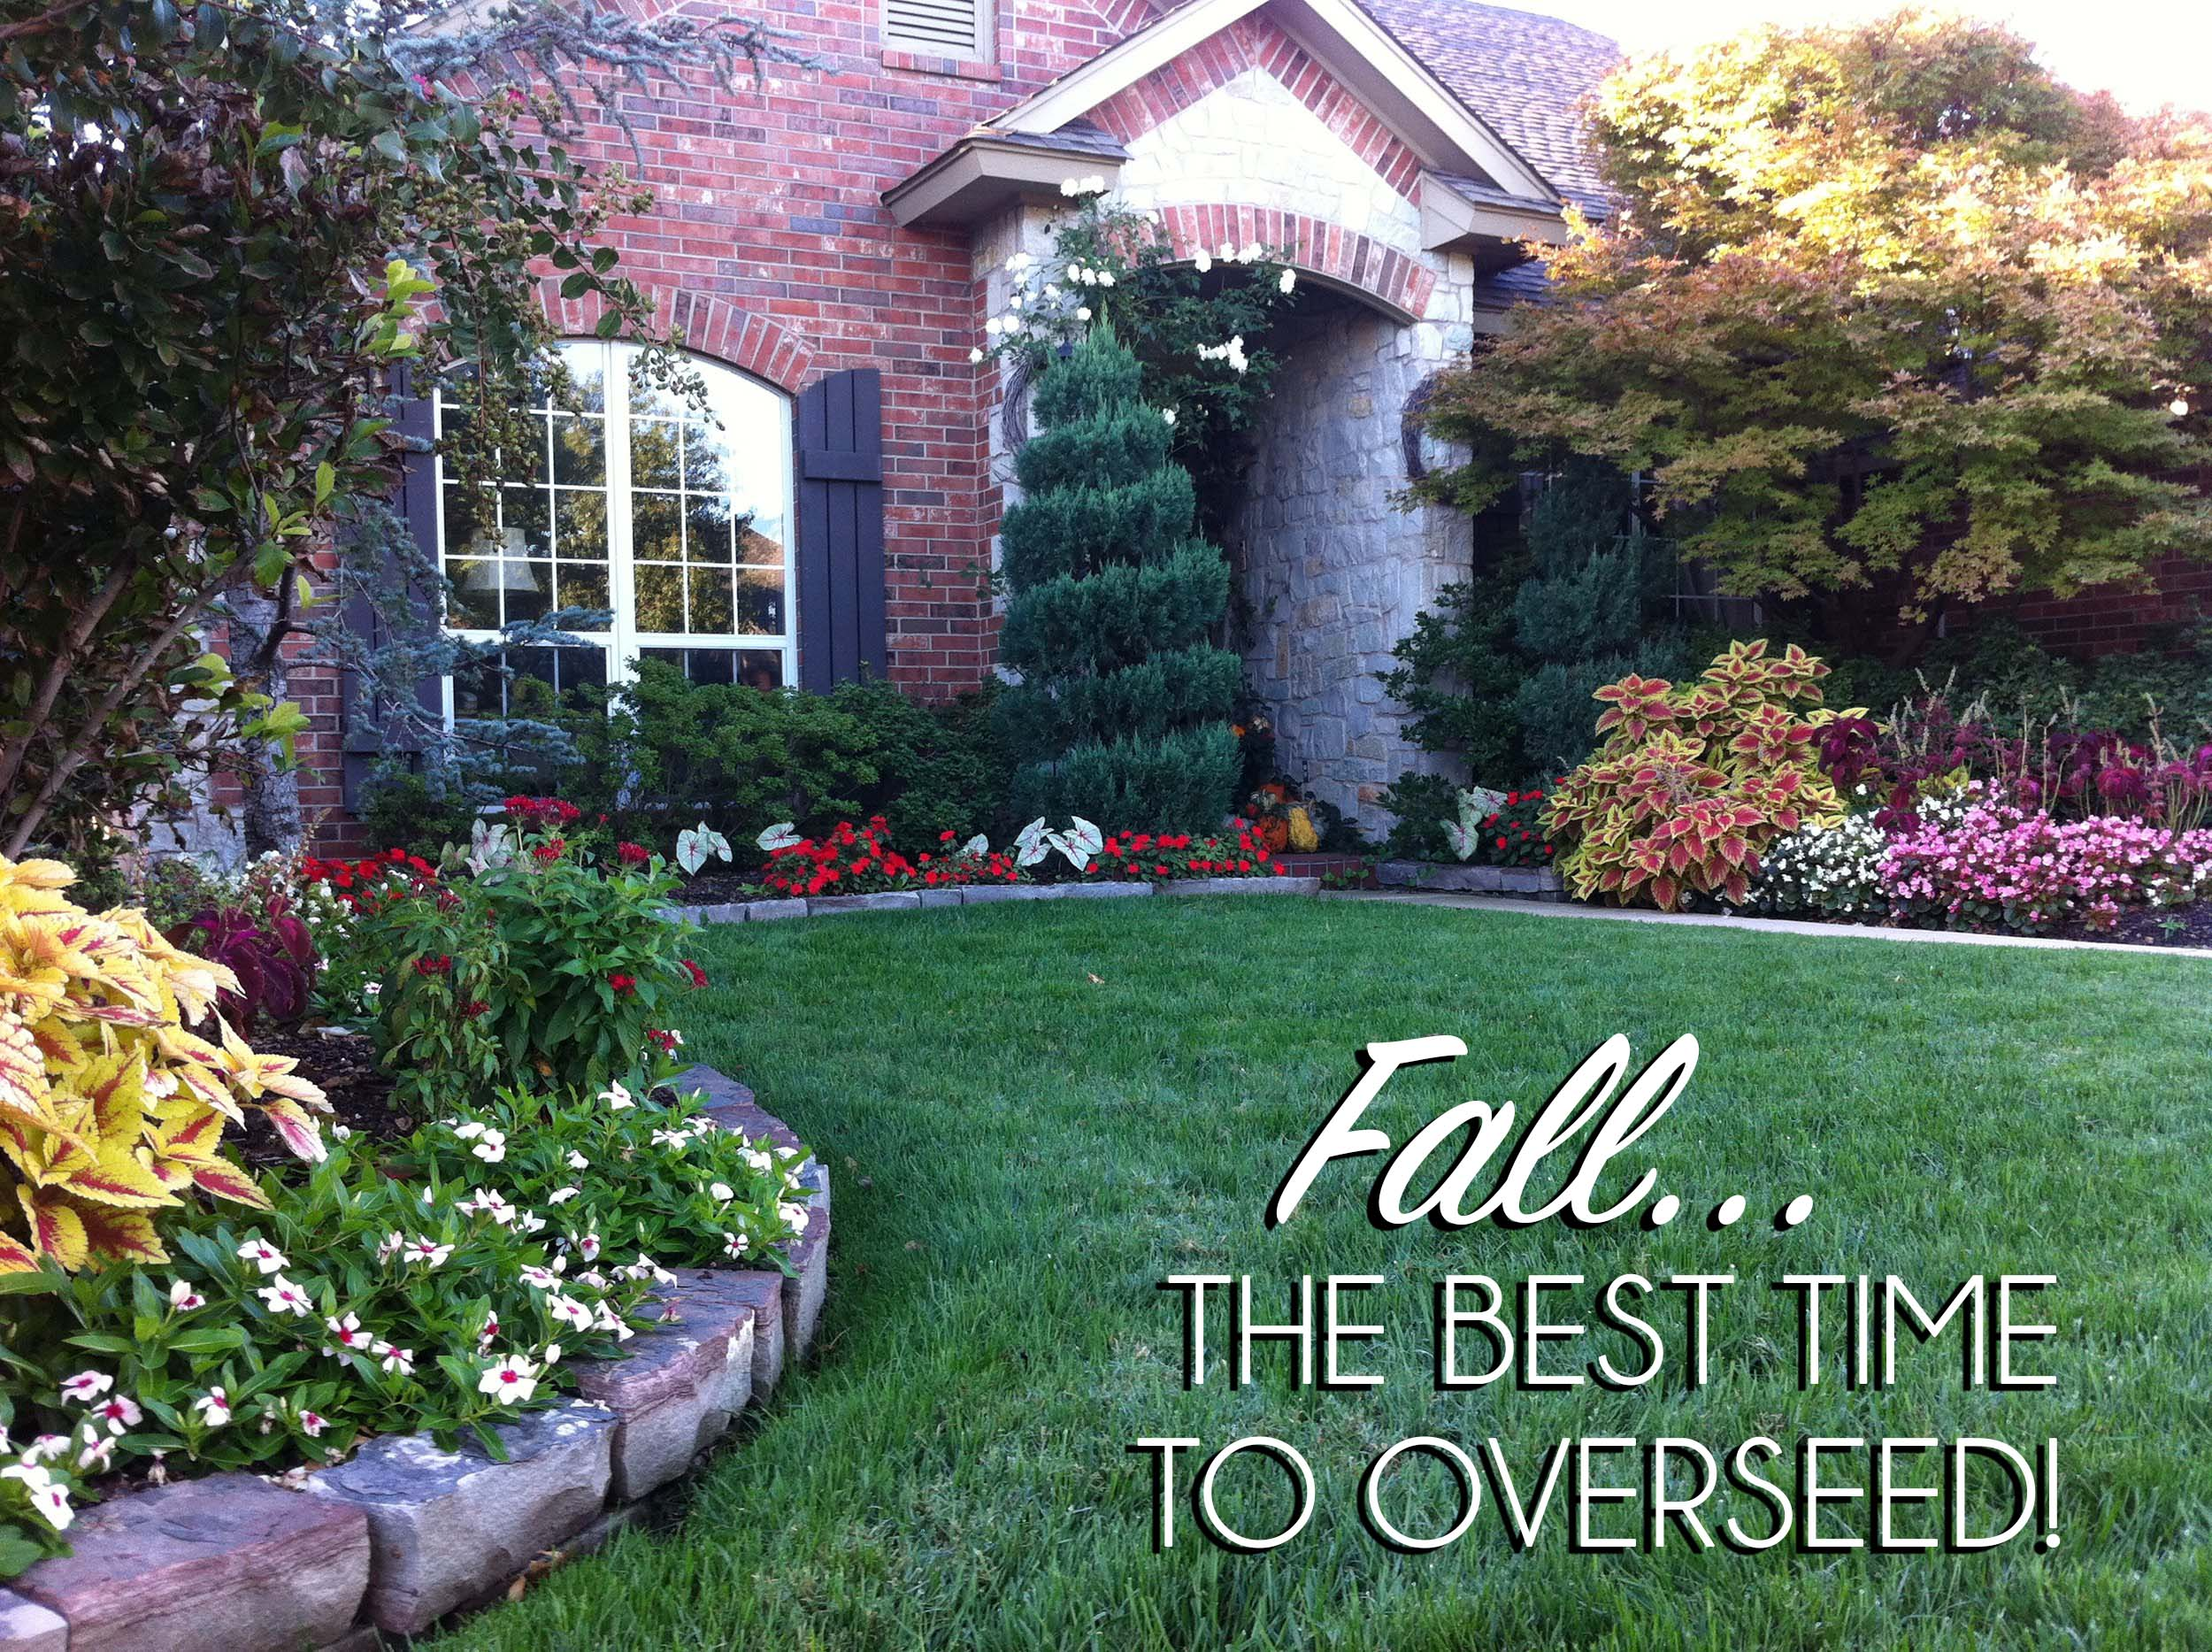 Fall - the best time to overseed!.jpg